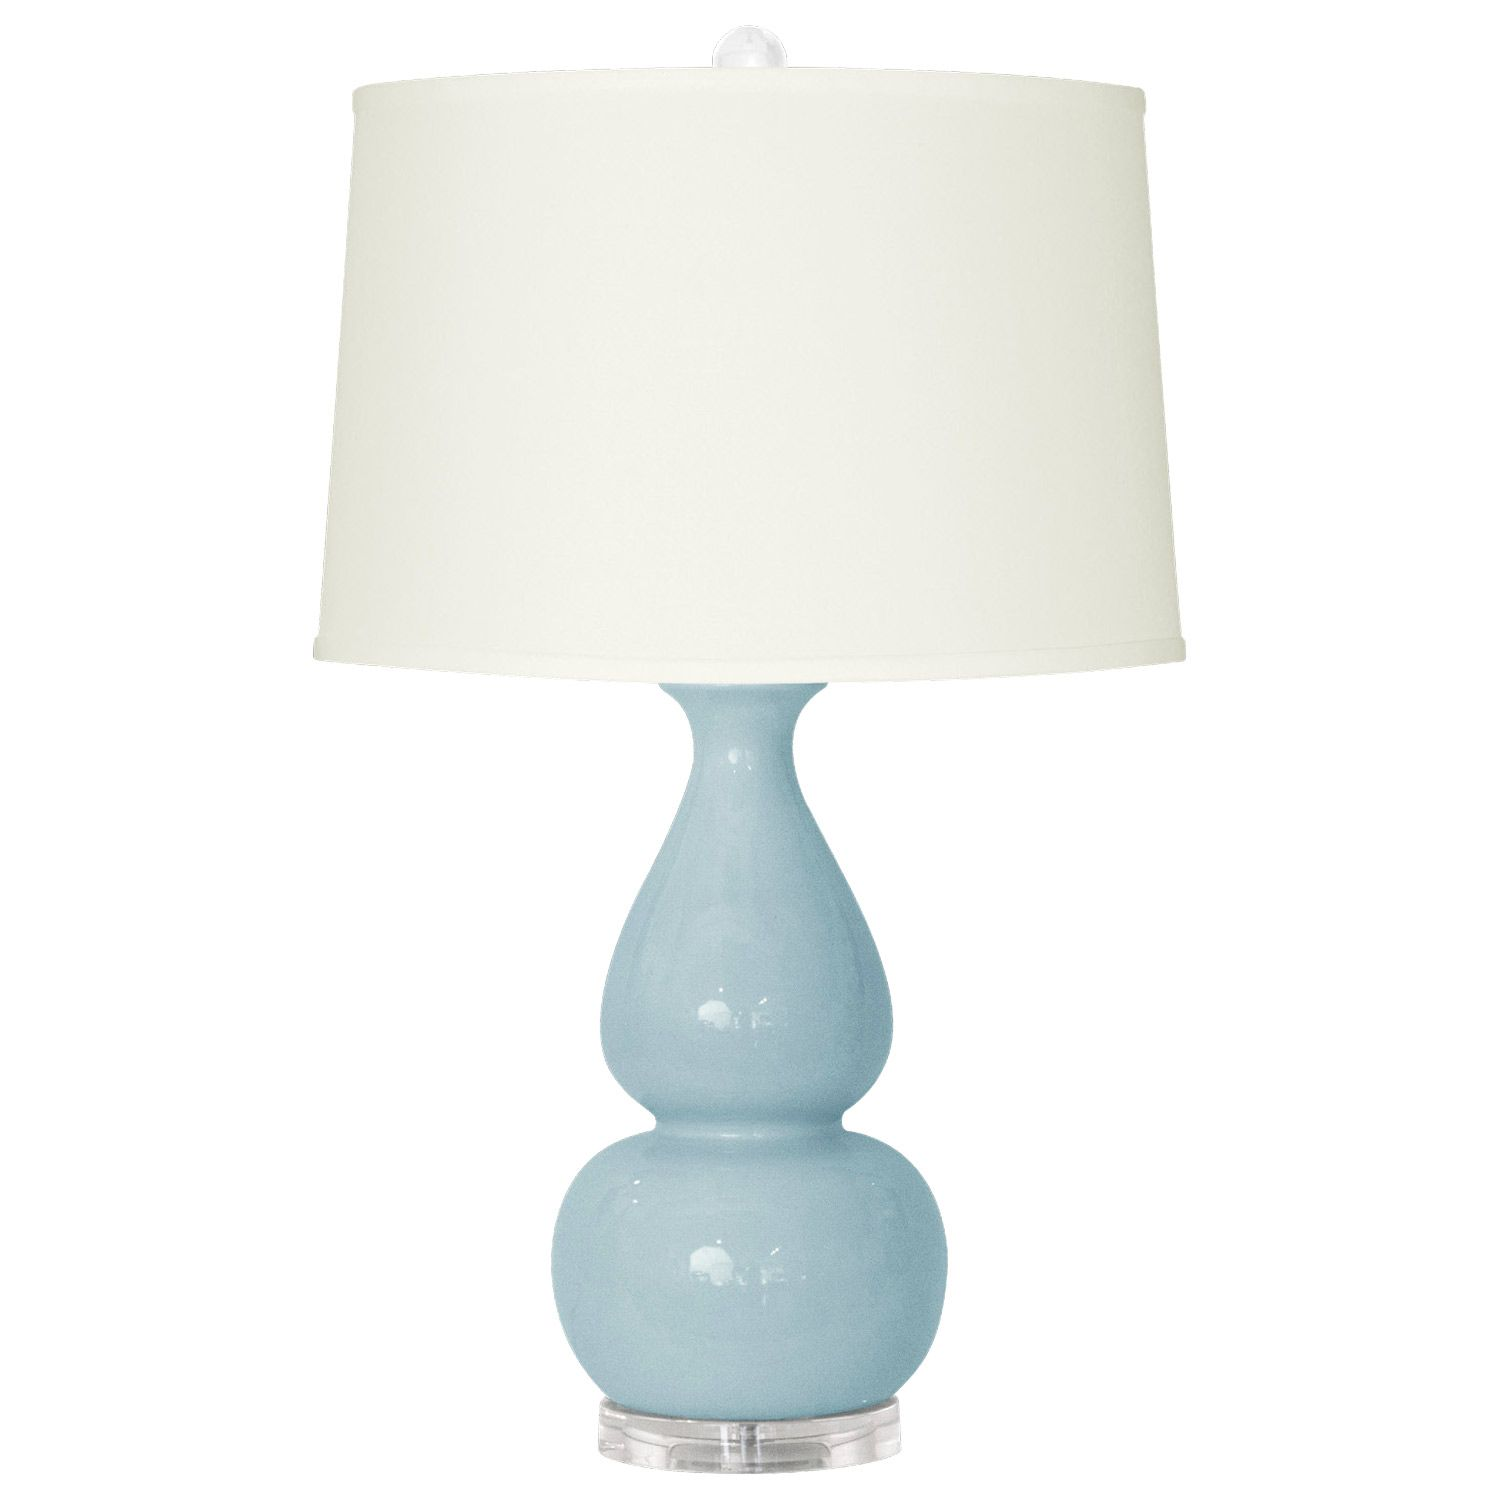 Bungalow 5 Emilia Light Blue Table Lamp Base From Layla